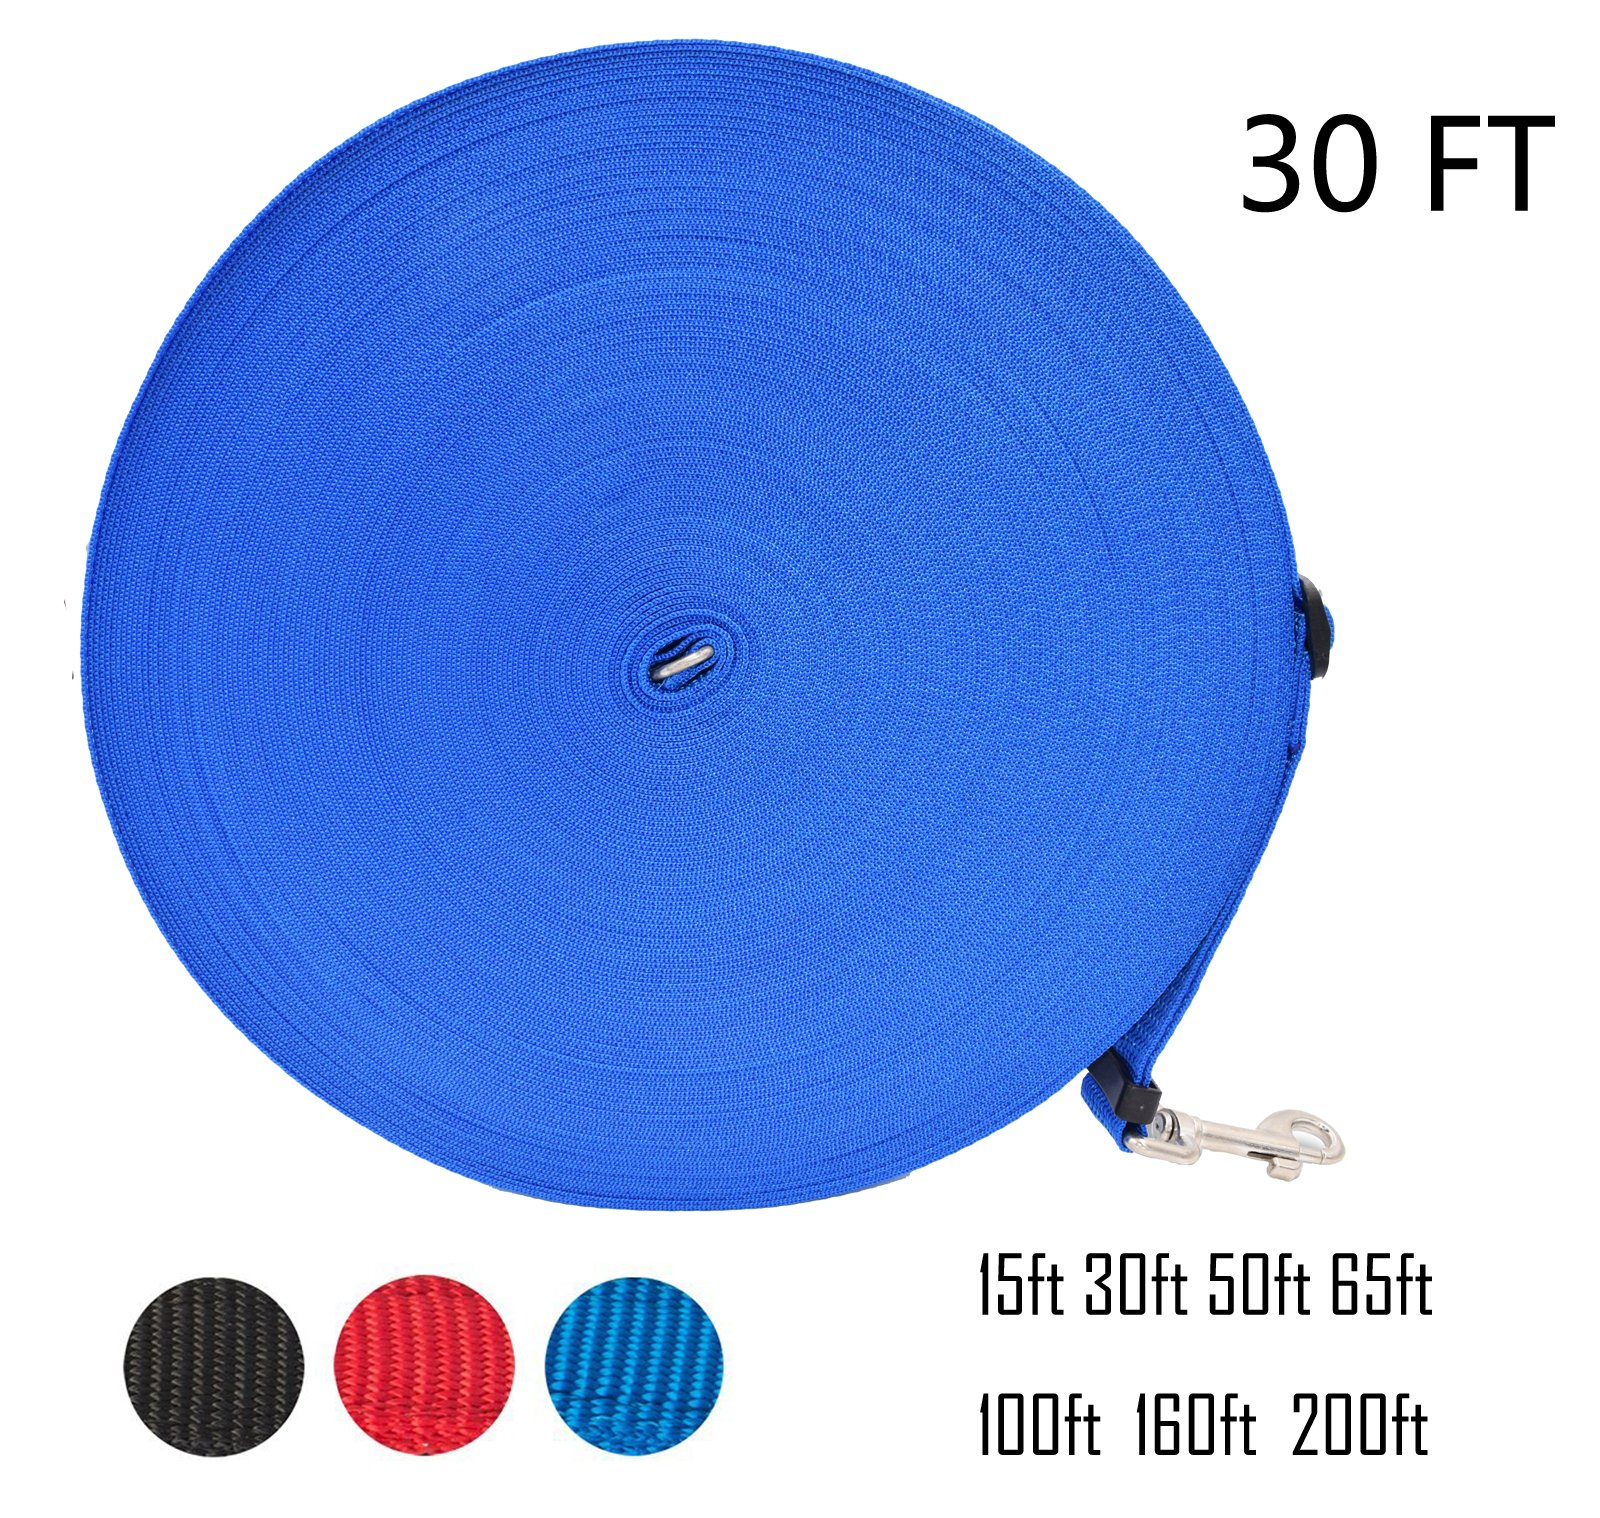 Zhixuanke 1in wide by 15ft 30ft 50ft 100ft 200feet long Nylon Training Leash - For Large,Medium and Small Dogs - Long Lead - Great for Training, Play, Camping, or Backyard (30 FT Blue, Blue)